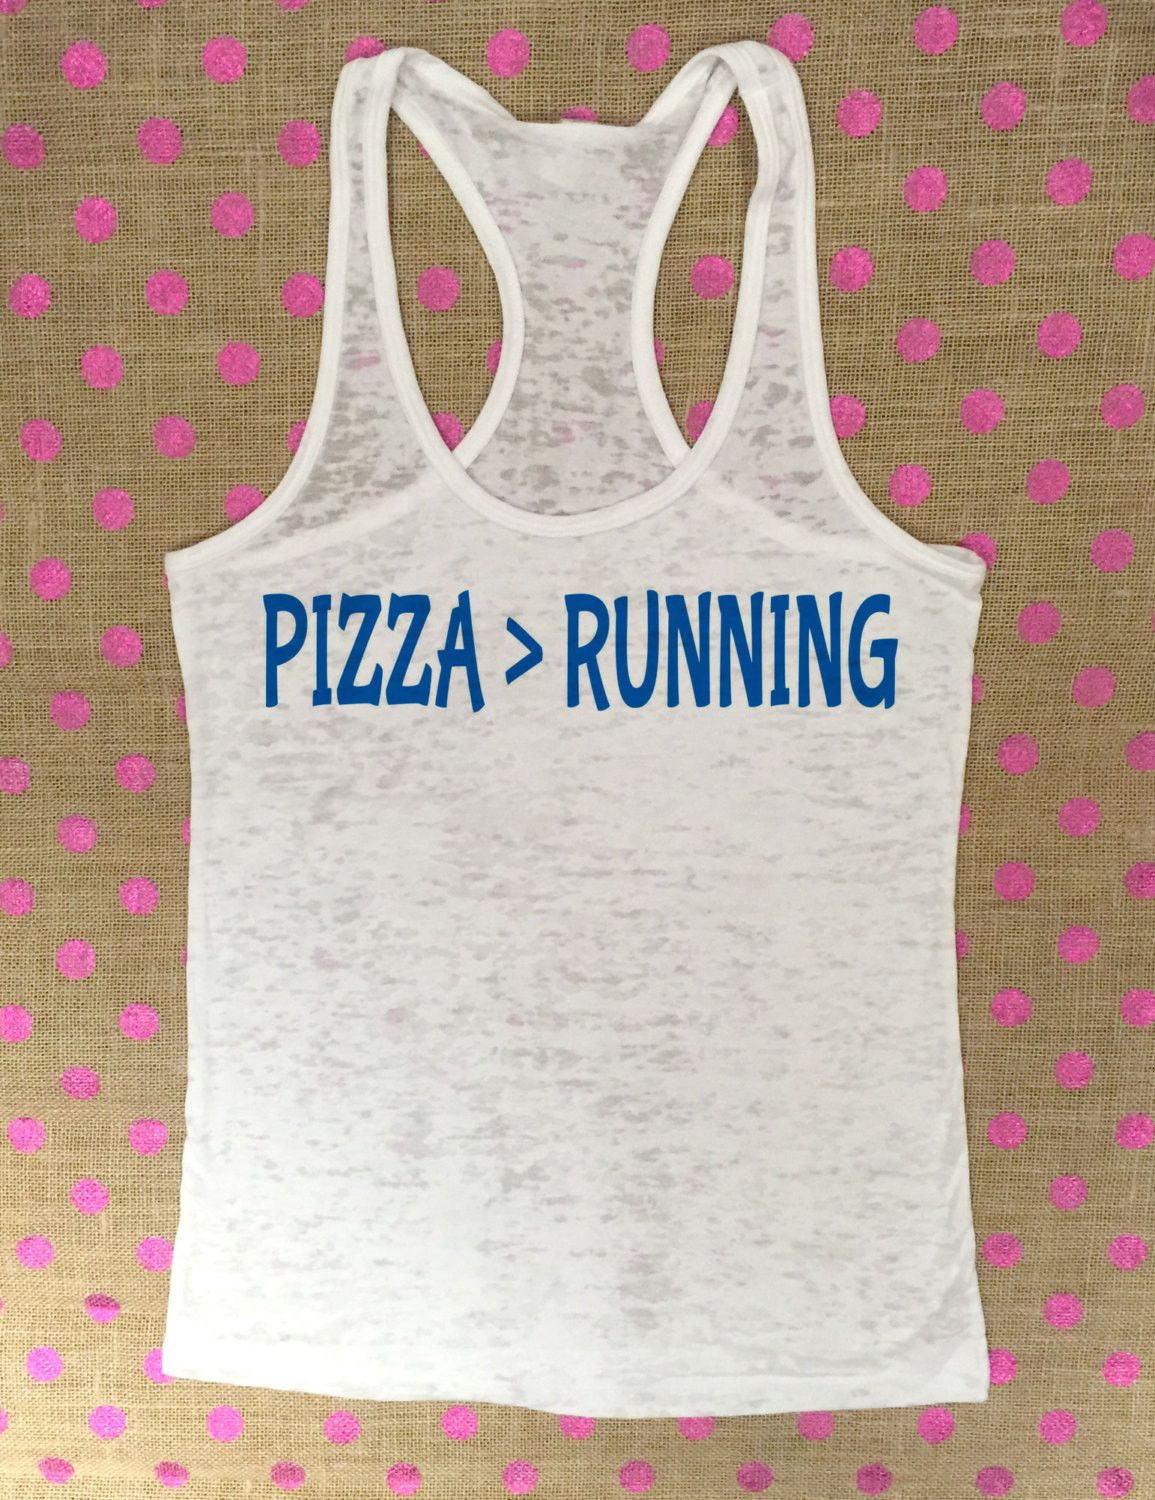 Pizza is Greater Than Running Workout Tank Top - Burnout Tank Top - Workout Tank Top - Pizza Tank Top - Funny Fitness Tank